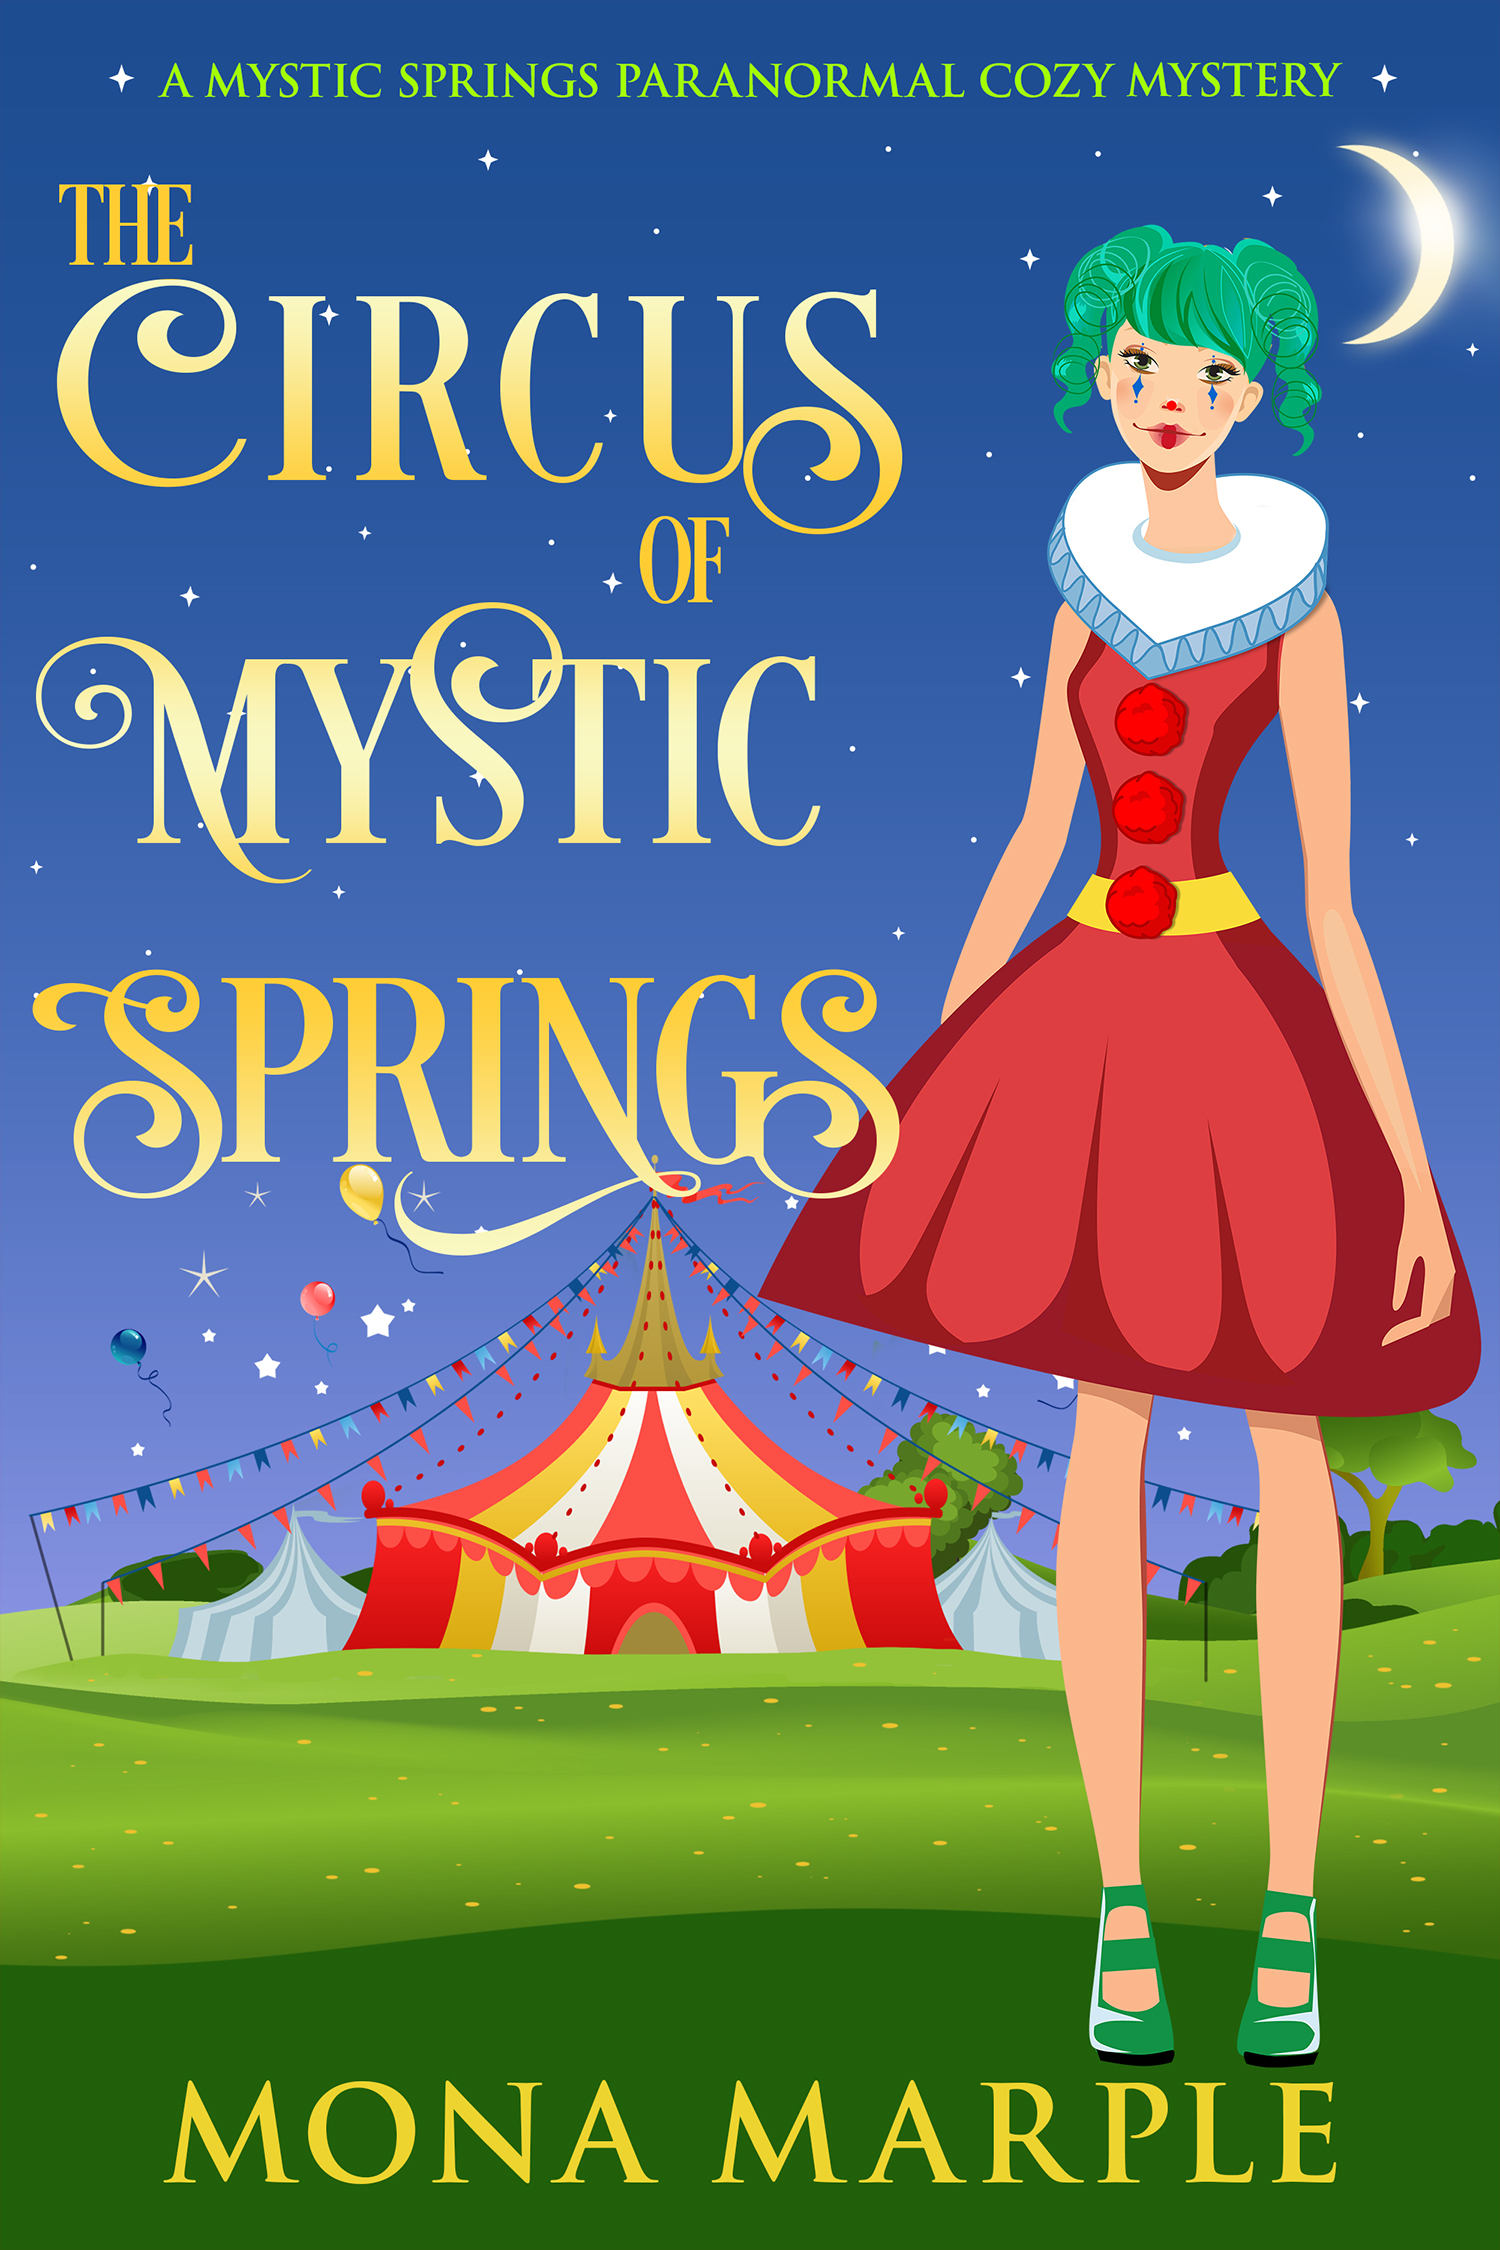 The Circus of Mystic Springs